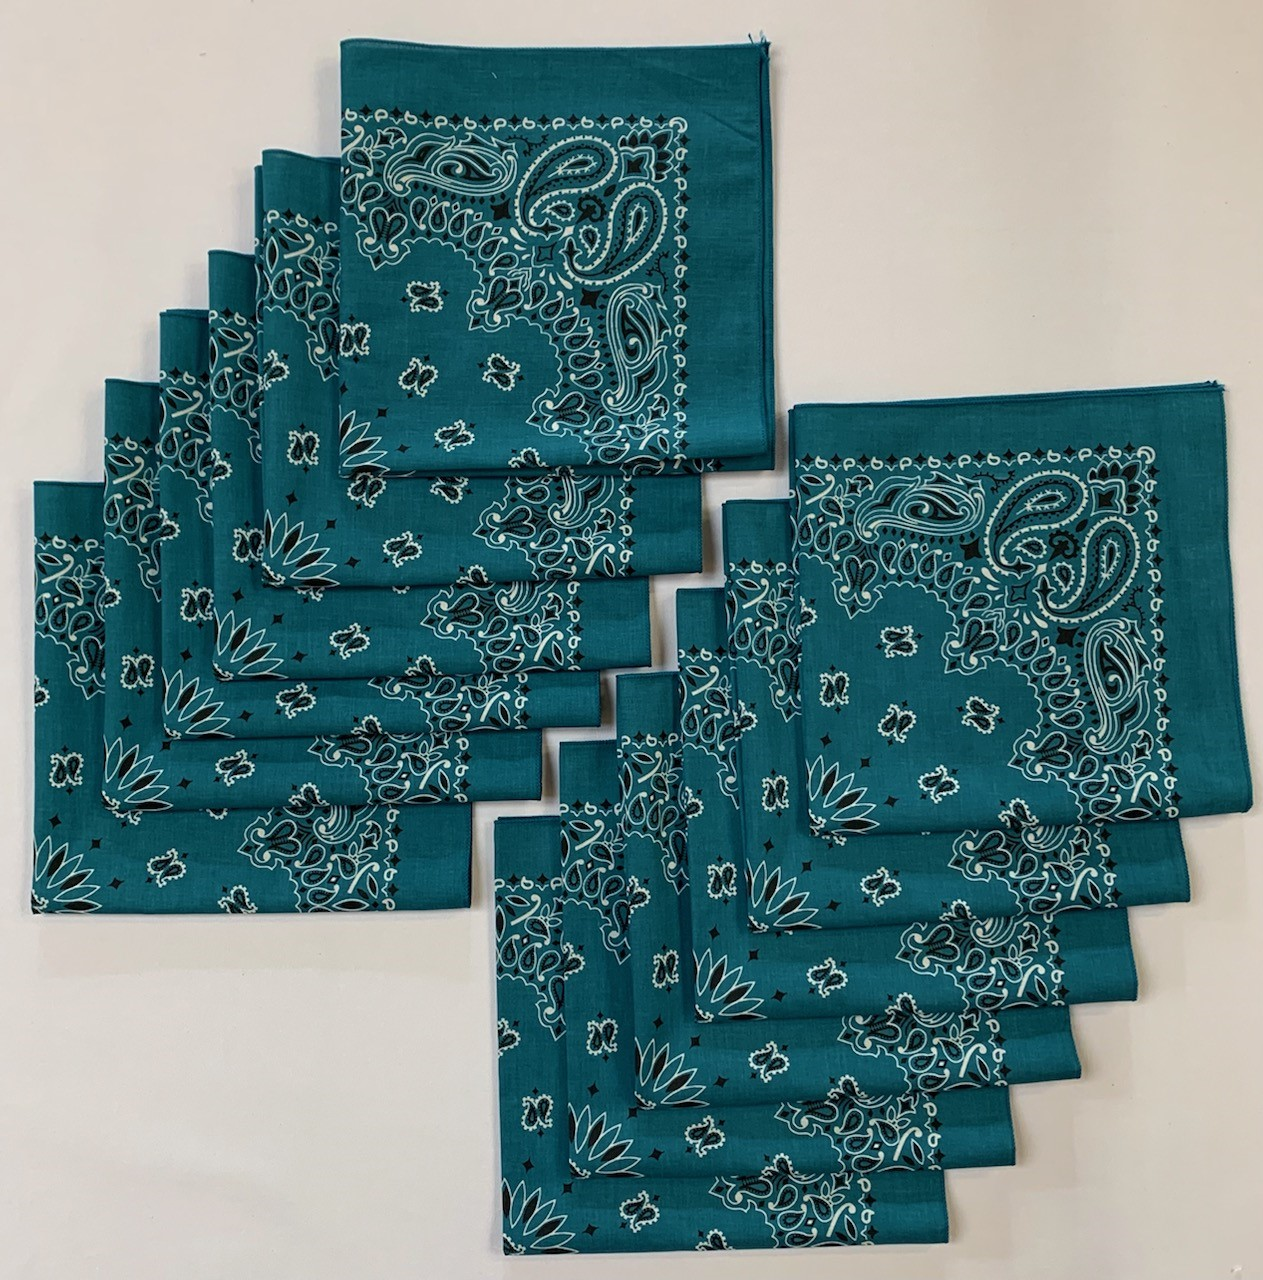 "Made in the USA Mirage Paisley Bandanas 12 Pk, 22"" x 22"" Cotton"